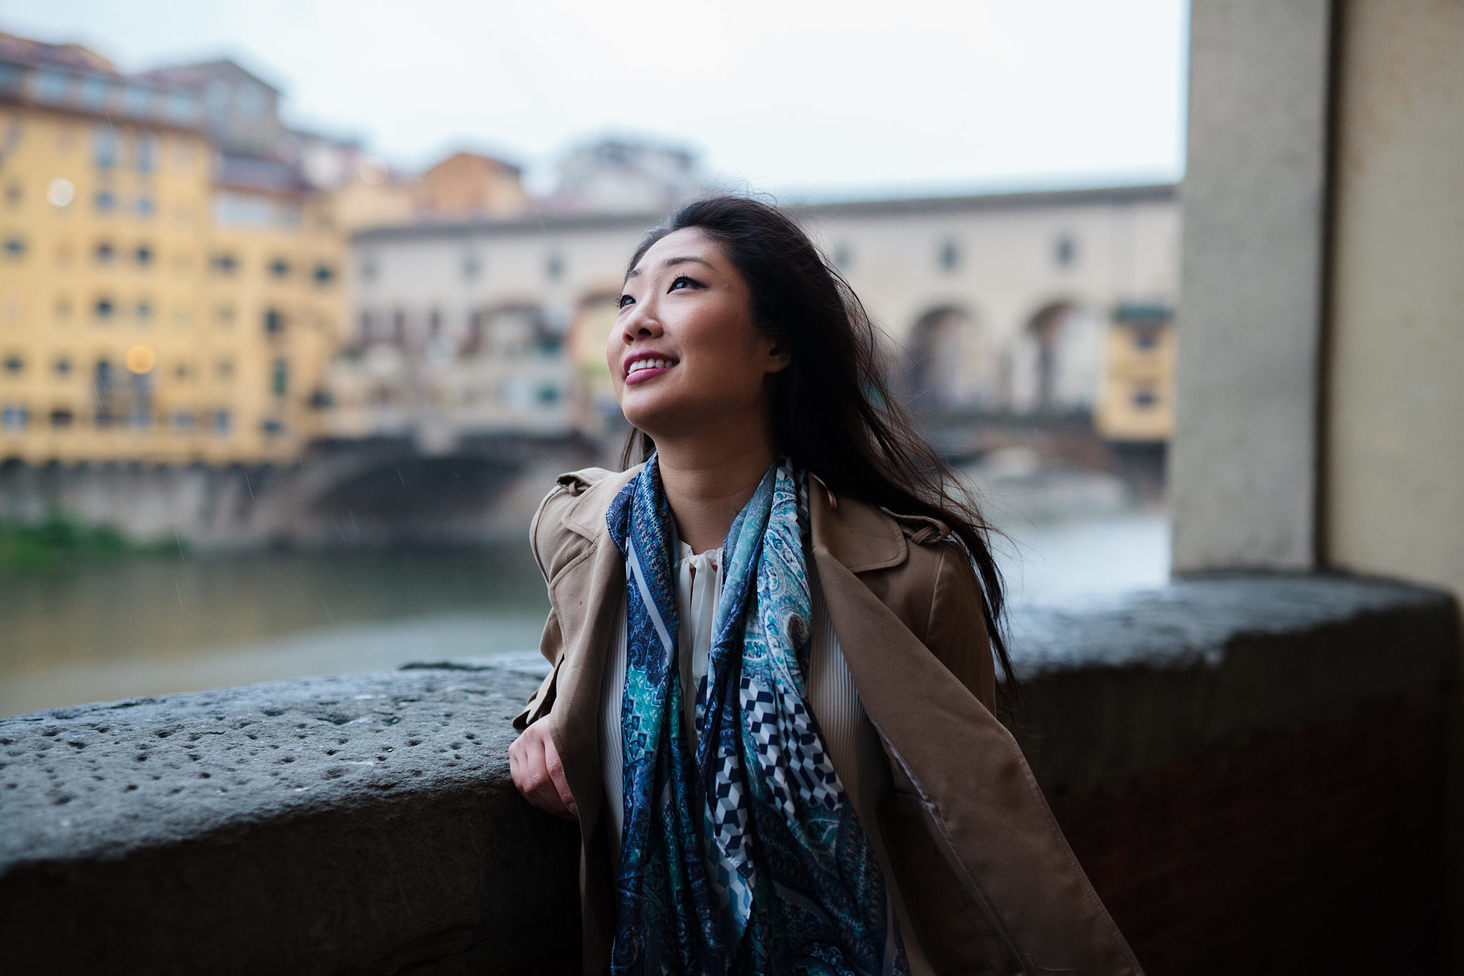 portrait-photography-florence-18